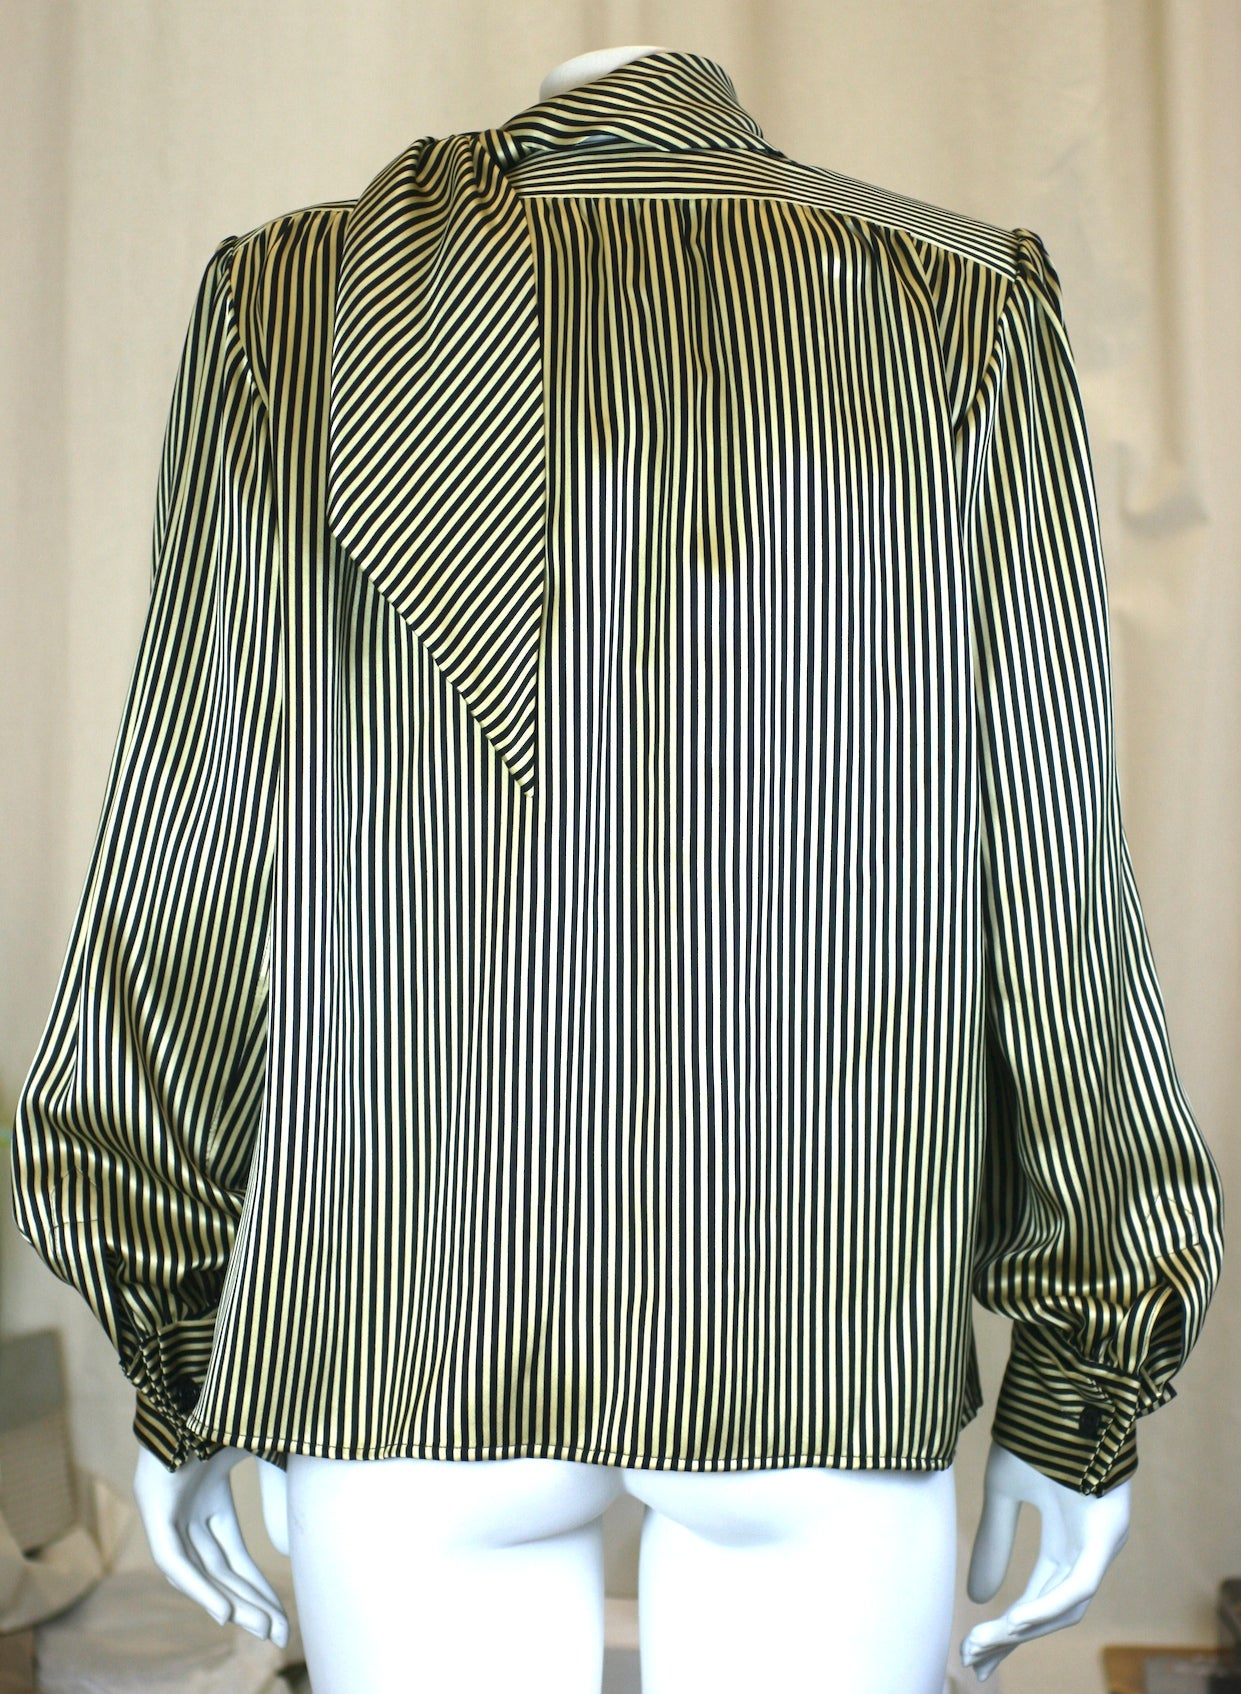 8ee4b5f5f Yves Saint Laurent Silk Satin Tie Blouse For Sale at 1stdibs